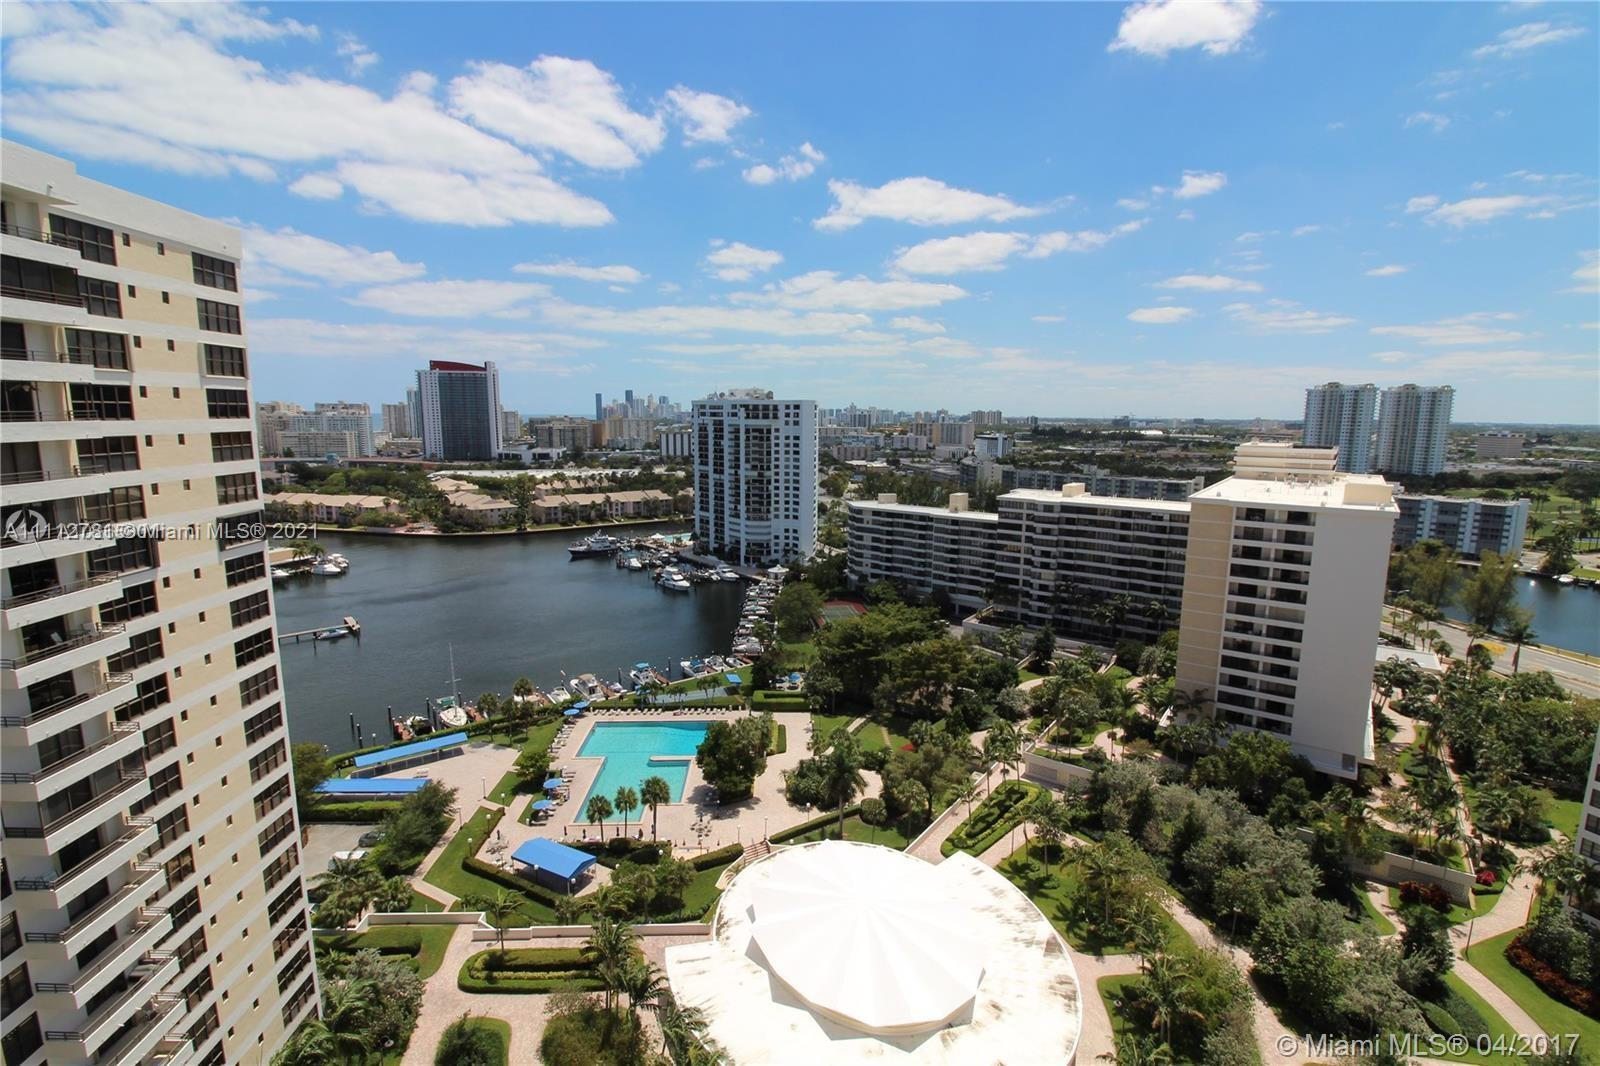 WELCOME TO THE OLYMPUS SPECTACULAR SOUTH VIEWS OF INTRACOASTAL MARINA OLYMPIC POOL AND GARDENS ENJOY